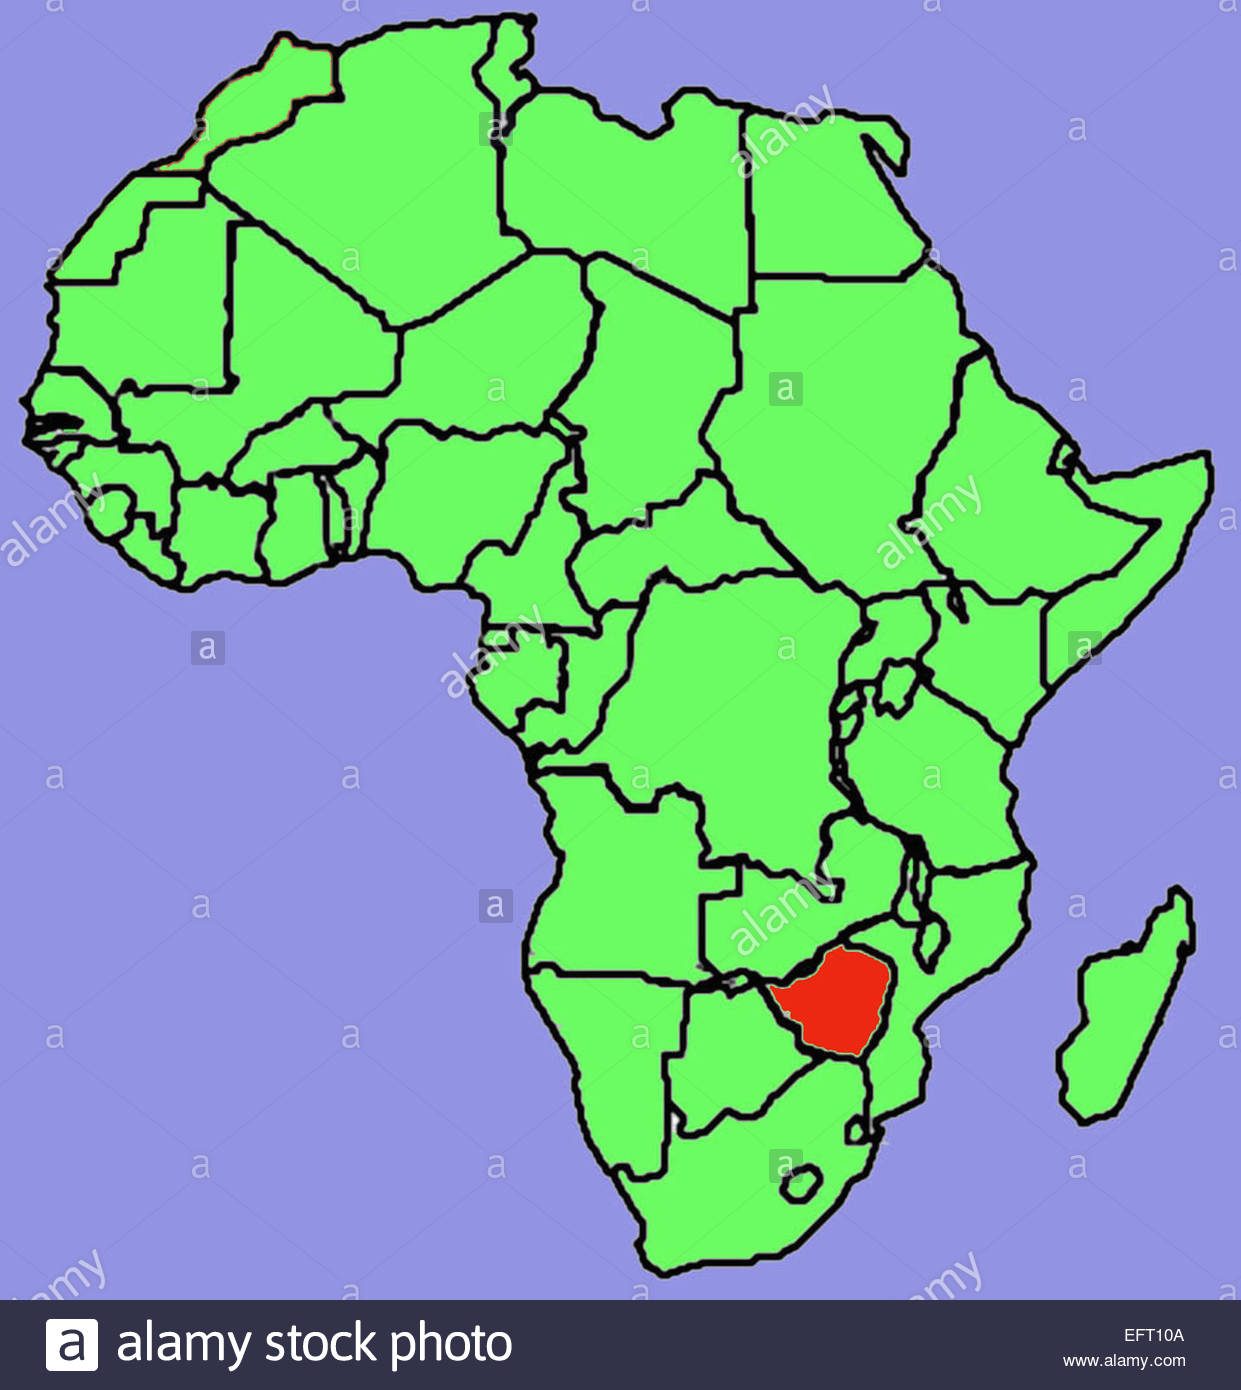 Map Of Africa Showing Zimbabwe.Map Republic Of Zimbabwe Southern Africa Zwe African Continent Stock